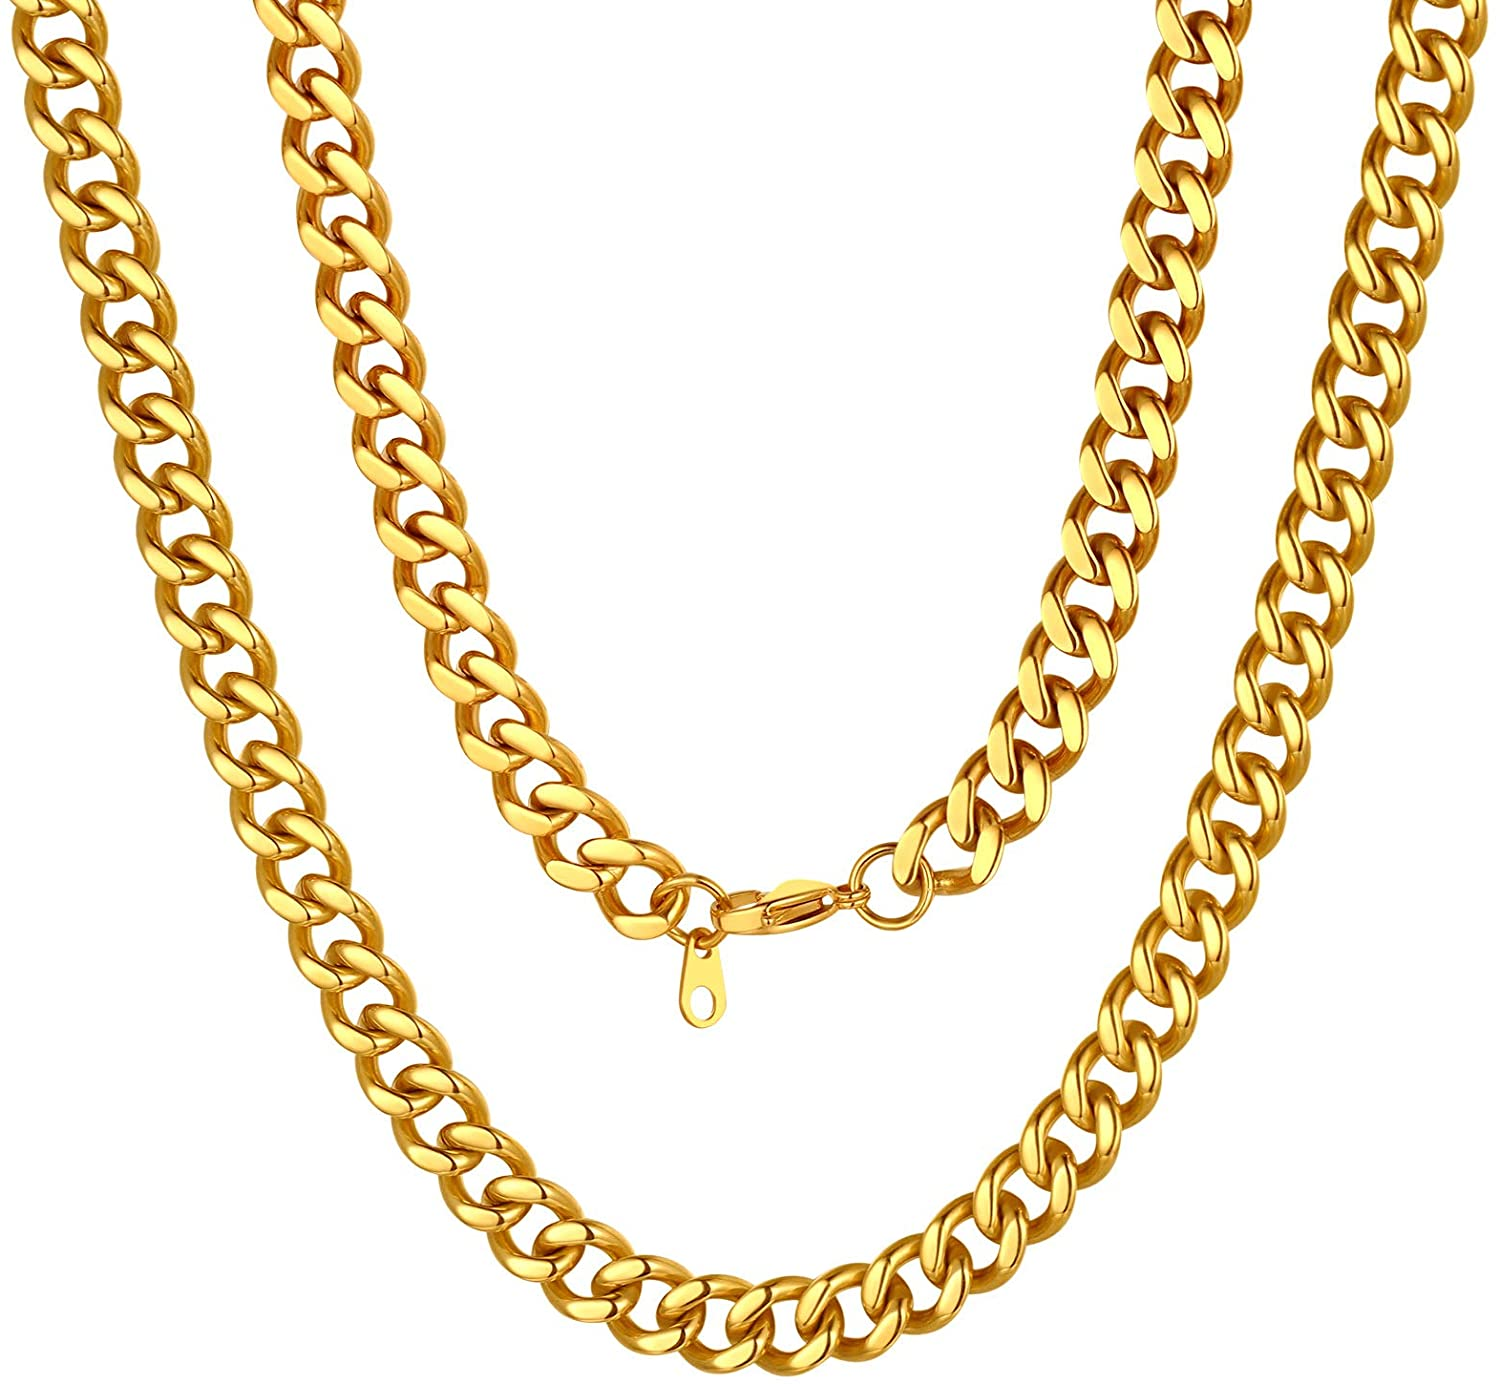 ChainsPro 14-30